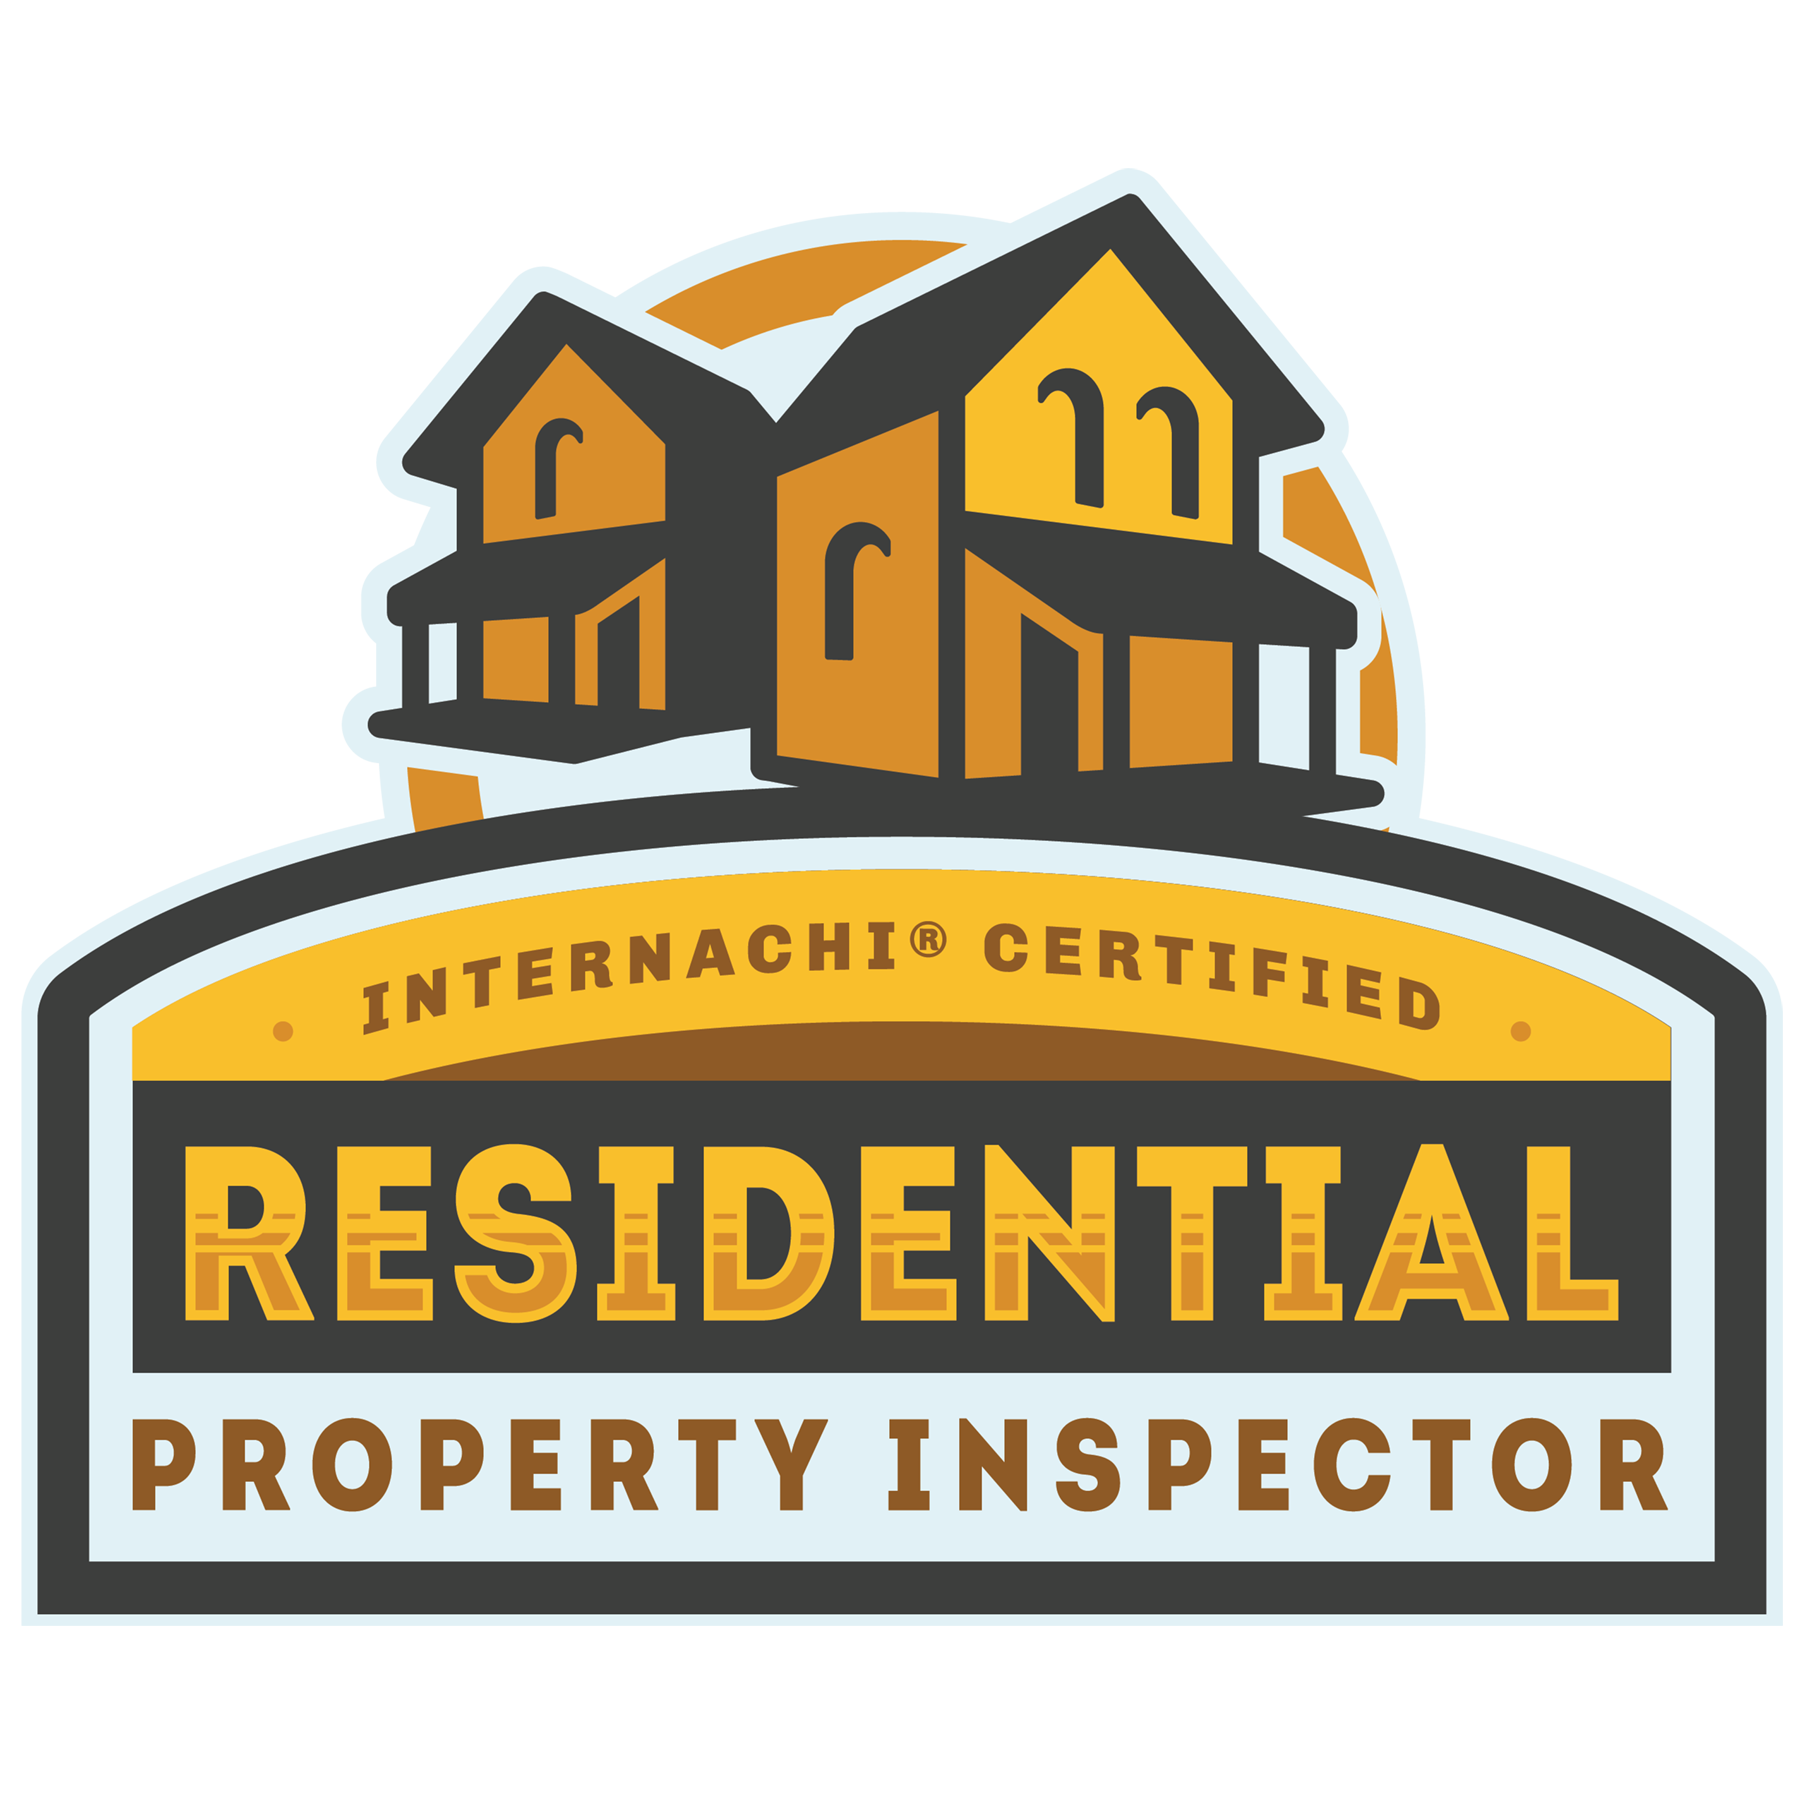 residential.property.inspector.png